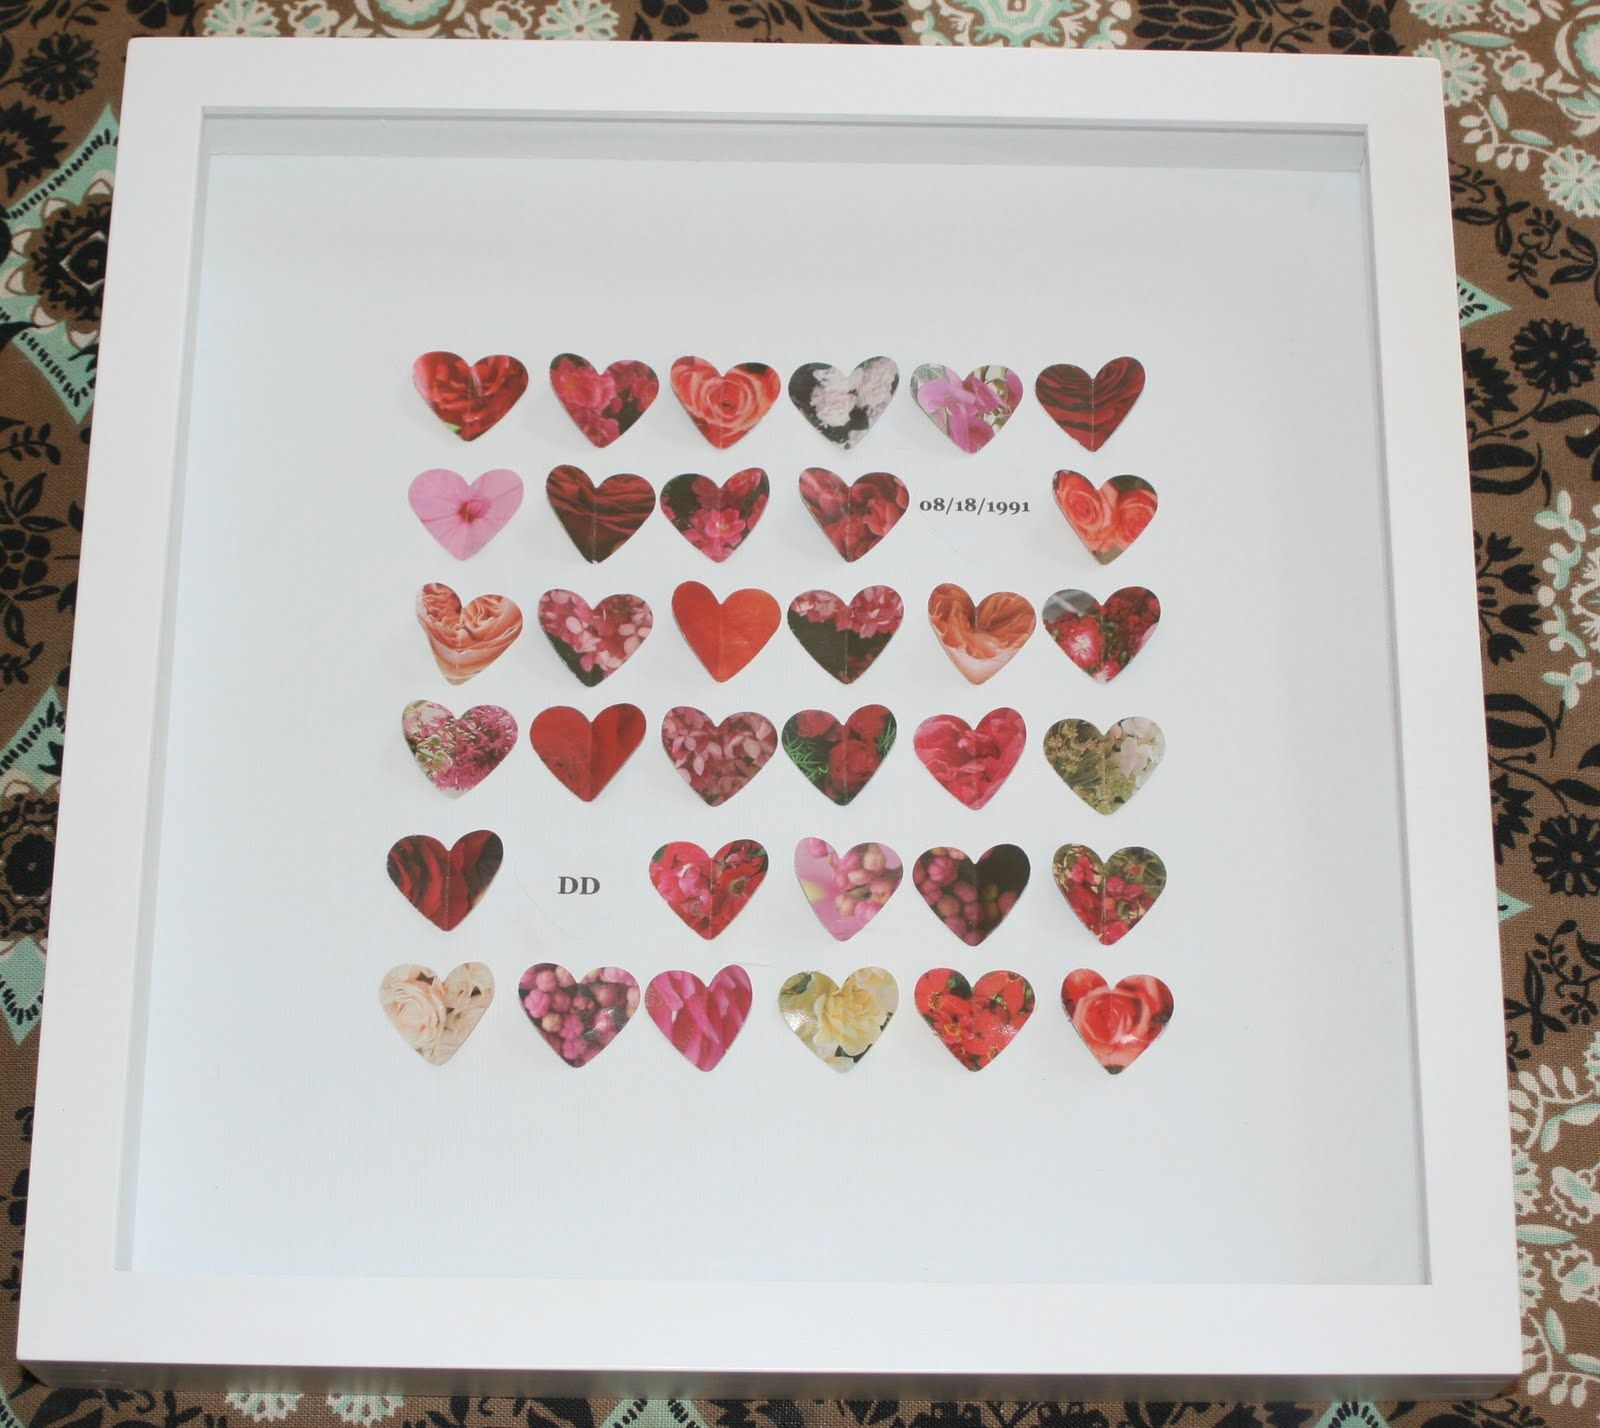 ... gifts homemade gifts anniversary ideas wedding frames wedding ideas